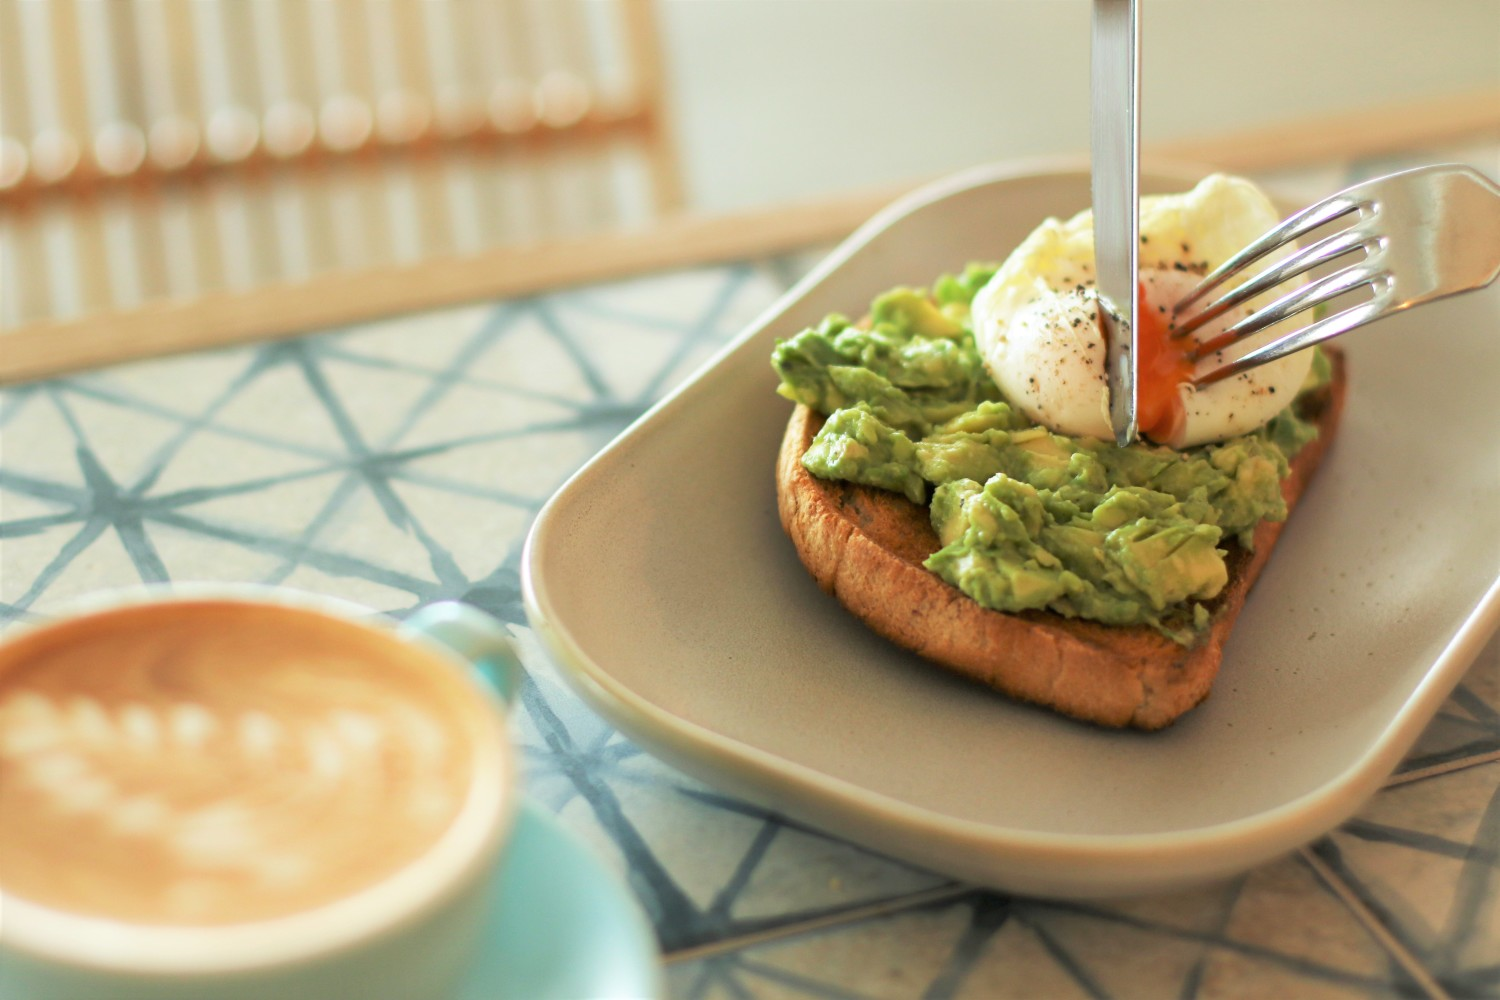 Avacado and Egg on Toast